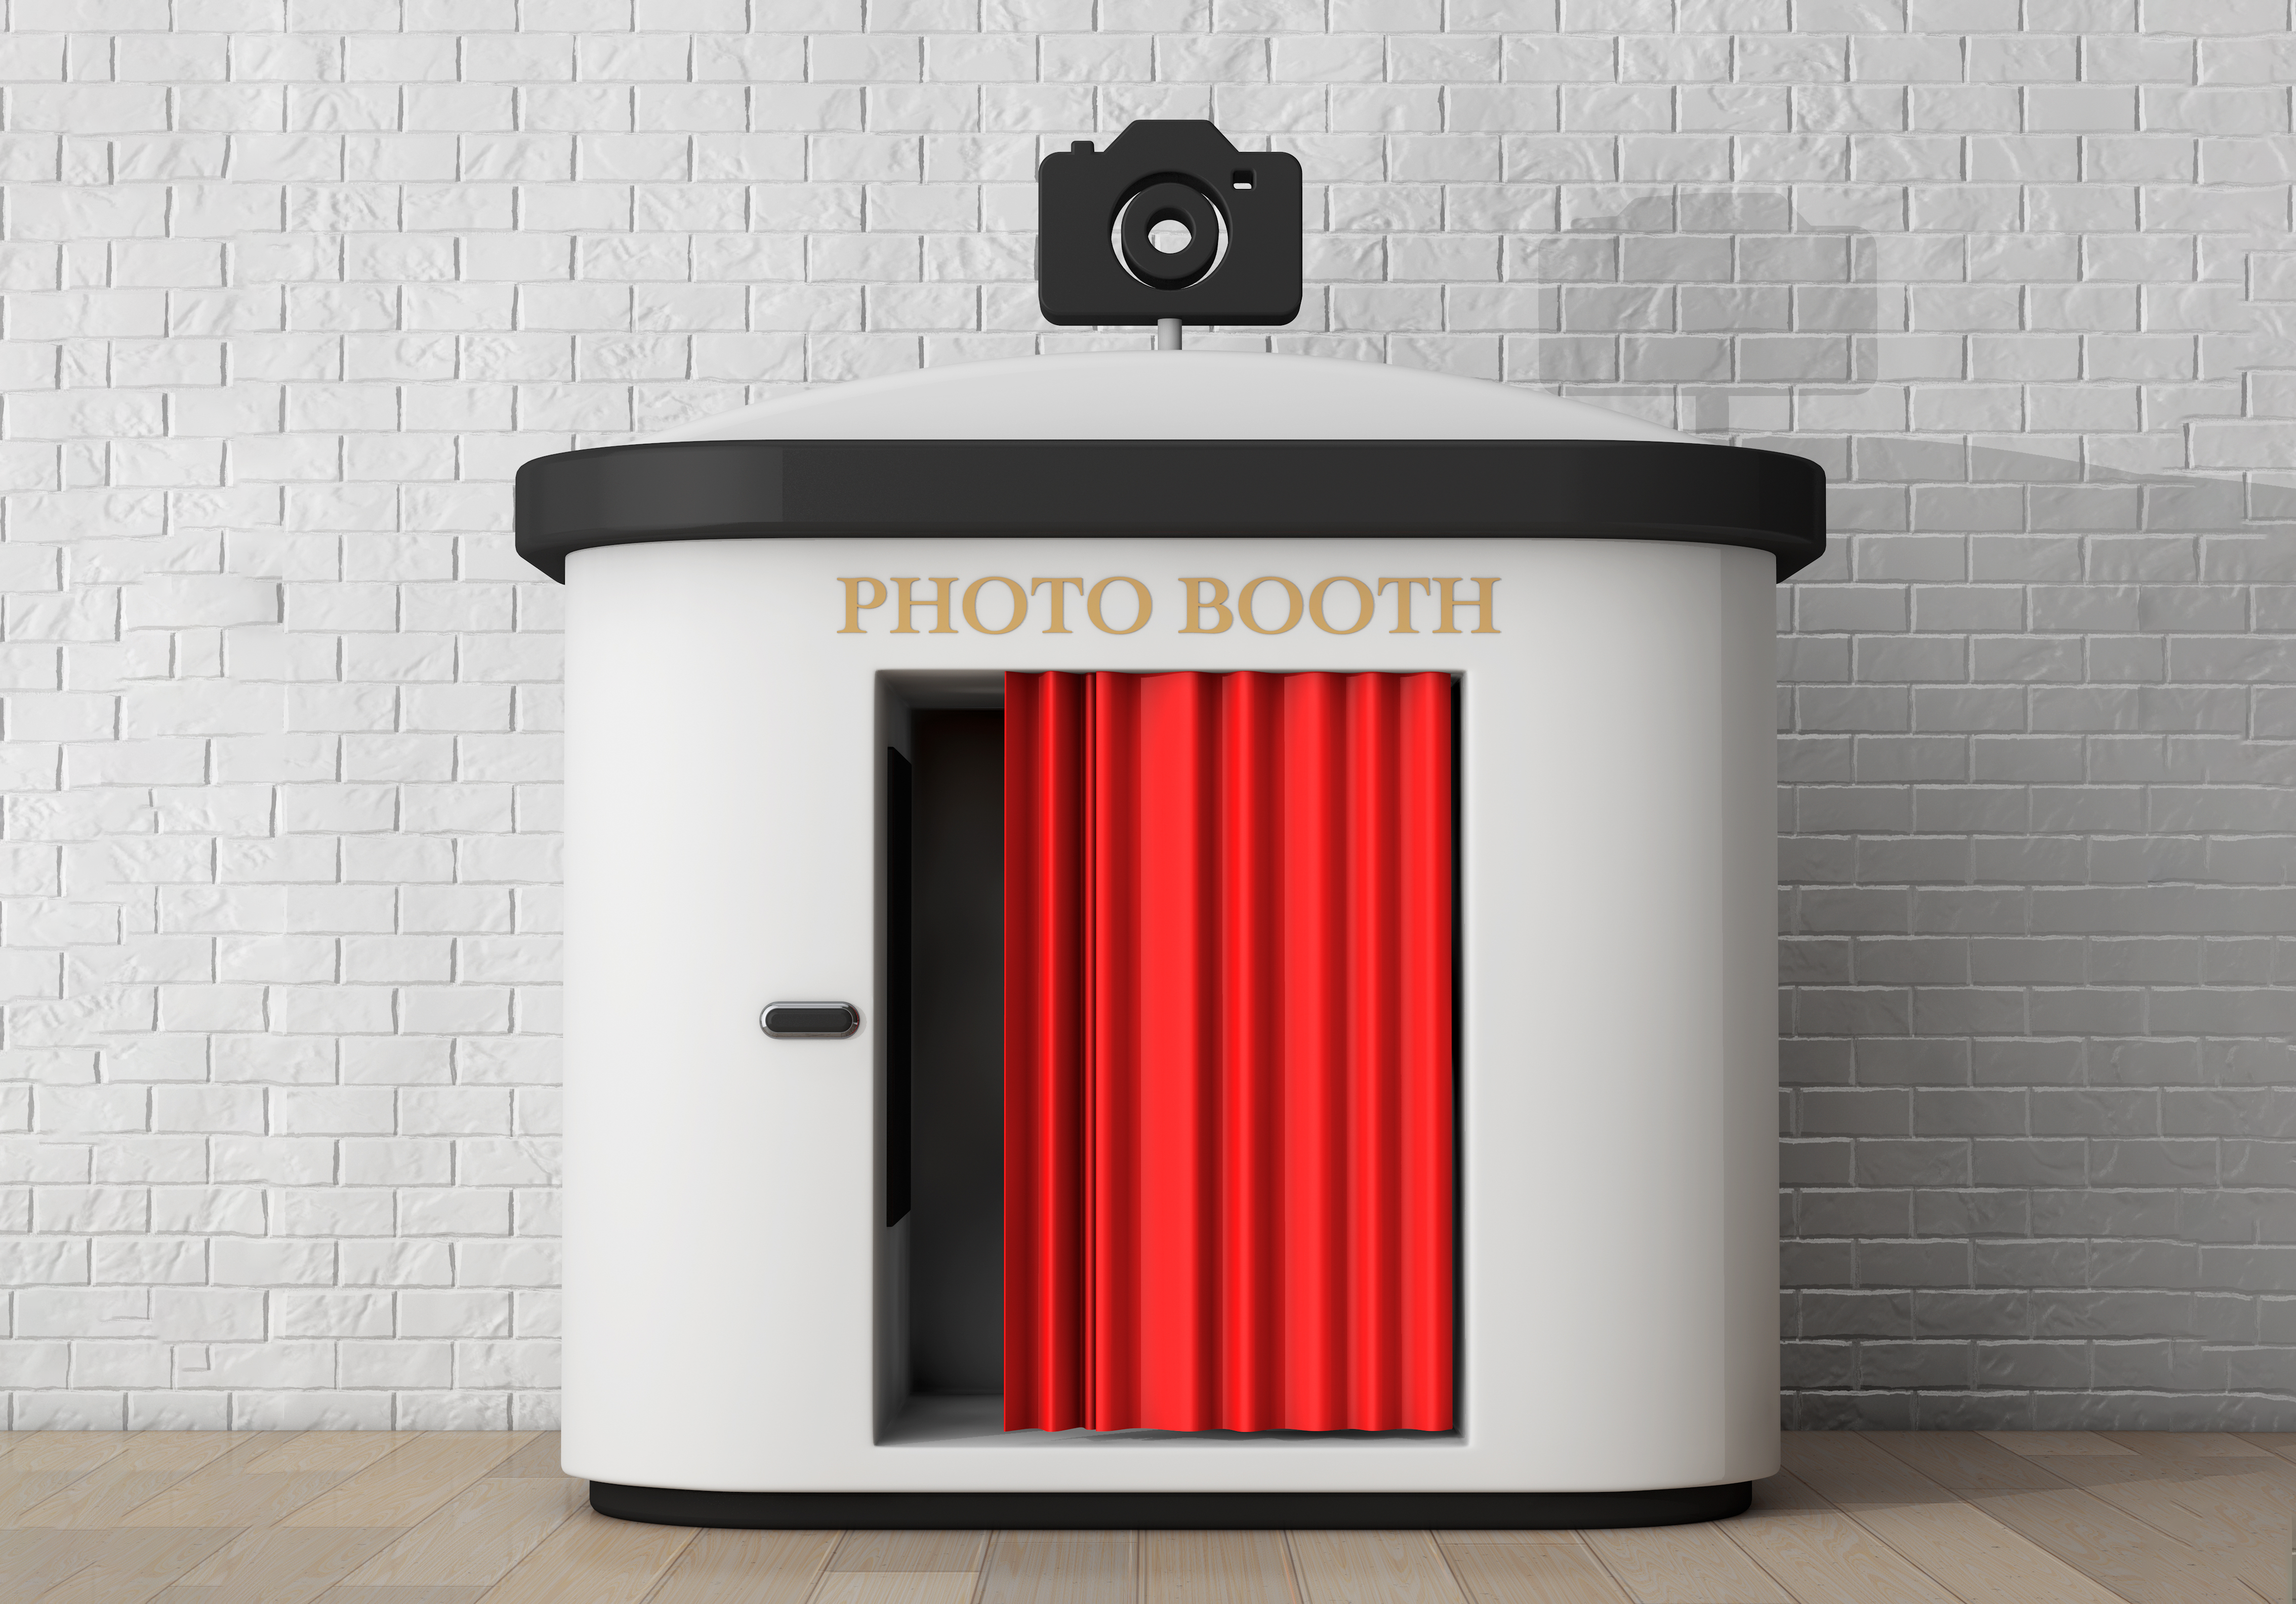 Månedens leieting: photo booths!